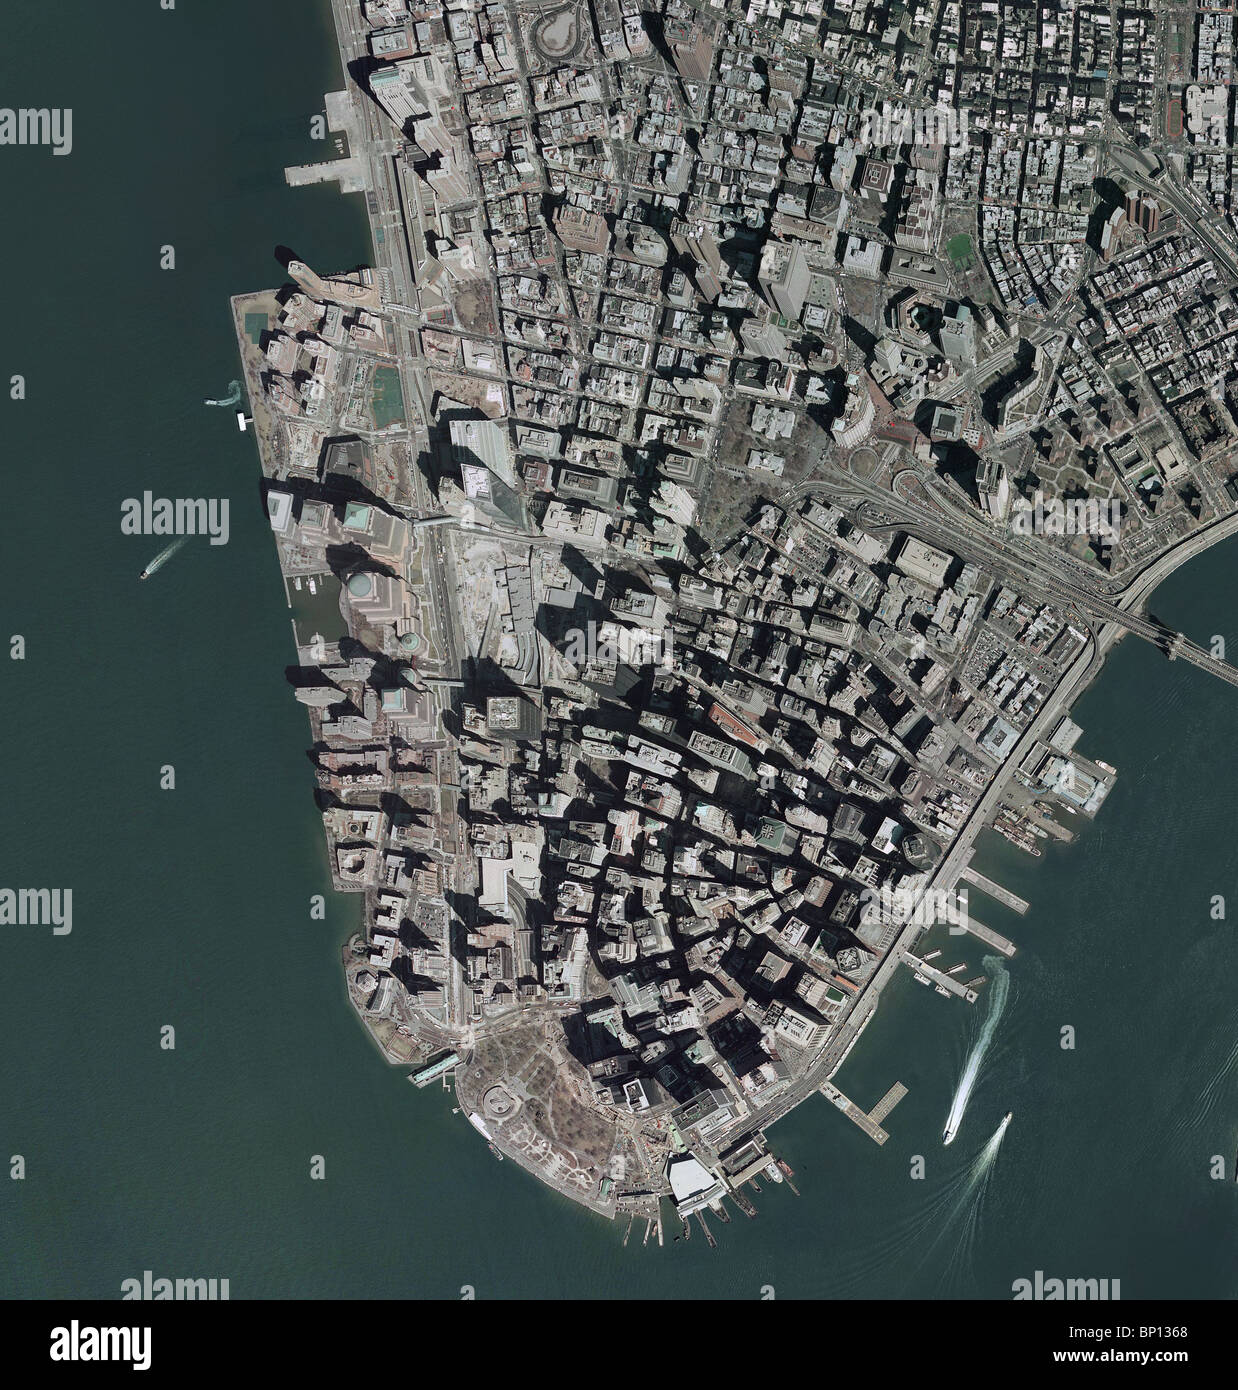 aerial map view above downtown manhattan new york city